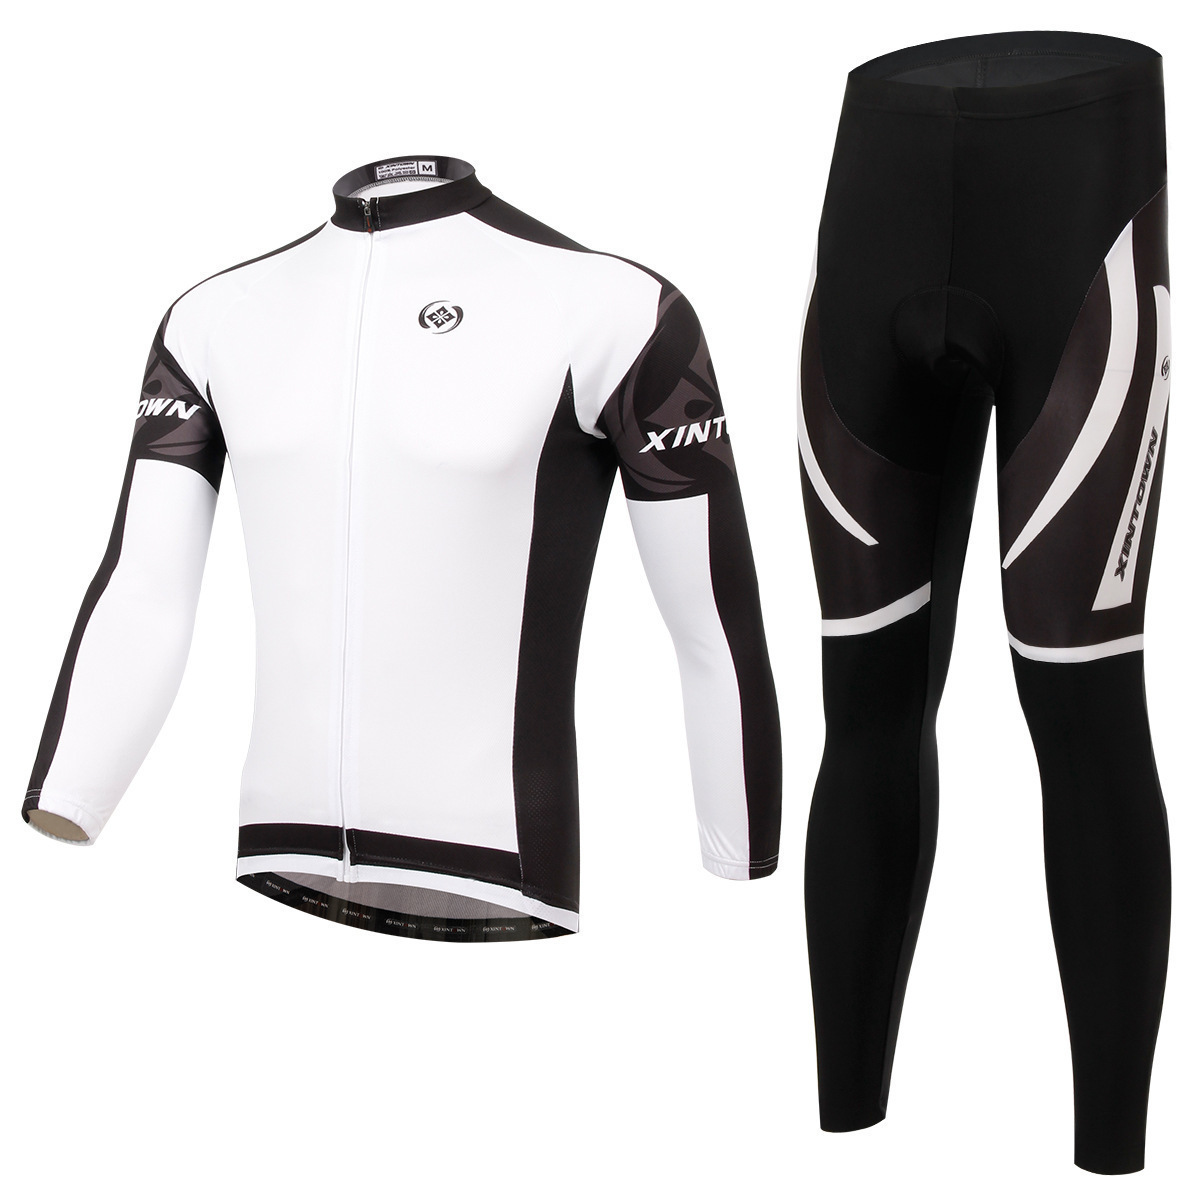 XINTOWN Long Sleeve Cycling Sets 2018 MTB Jersey Bike Wear Clothes Ropa Ciclismo Spring Autumn Long Sleeves Cycling Clothing Men xintown new 2018 spring cycling jersey set long sleeve 3d gel padded sets bike clothing mtb protective wear cycling clothes sets